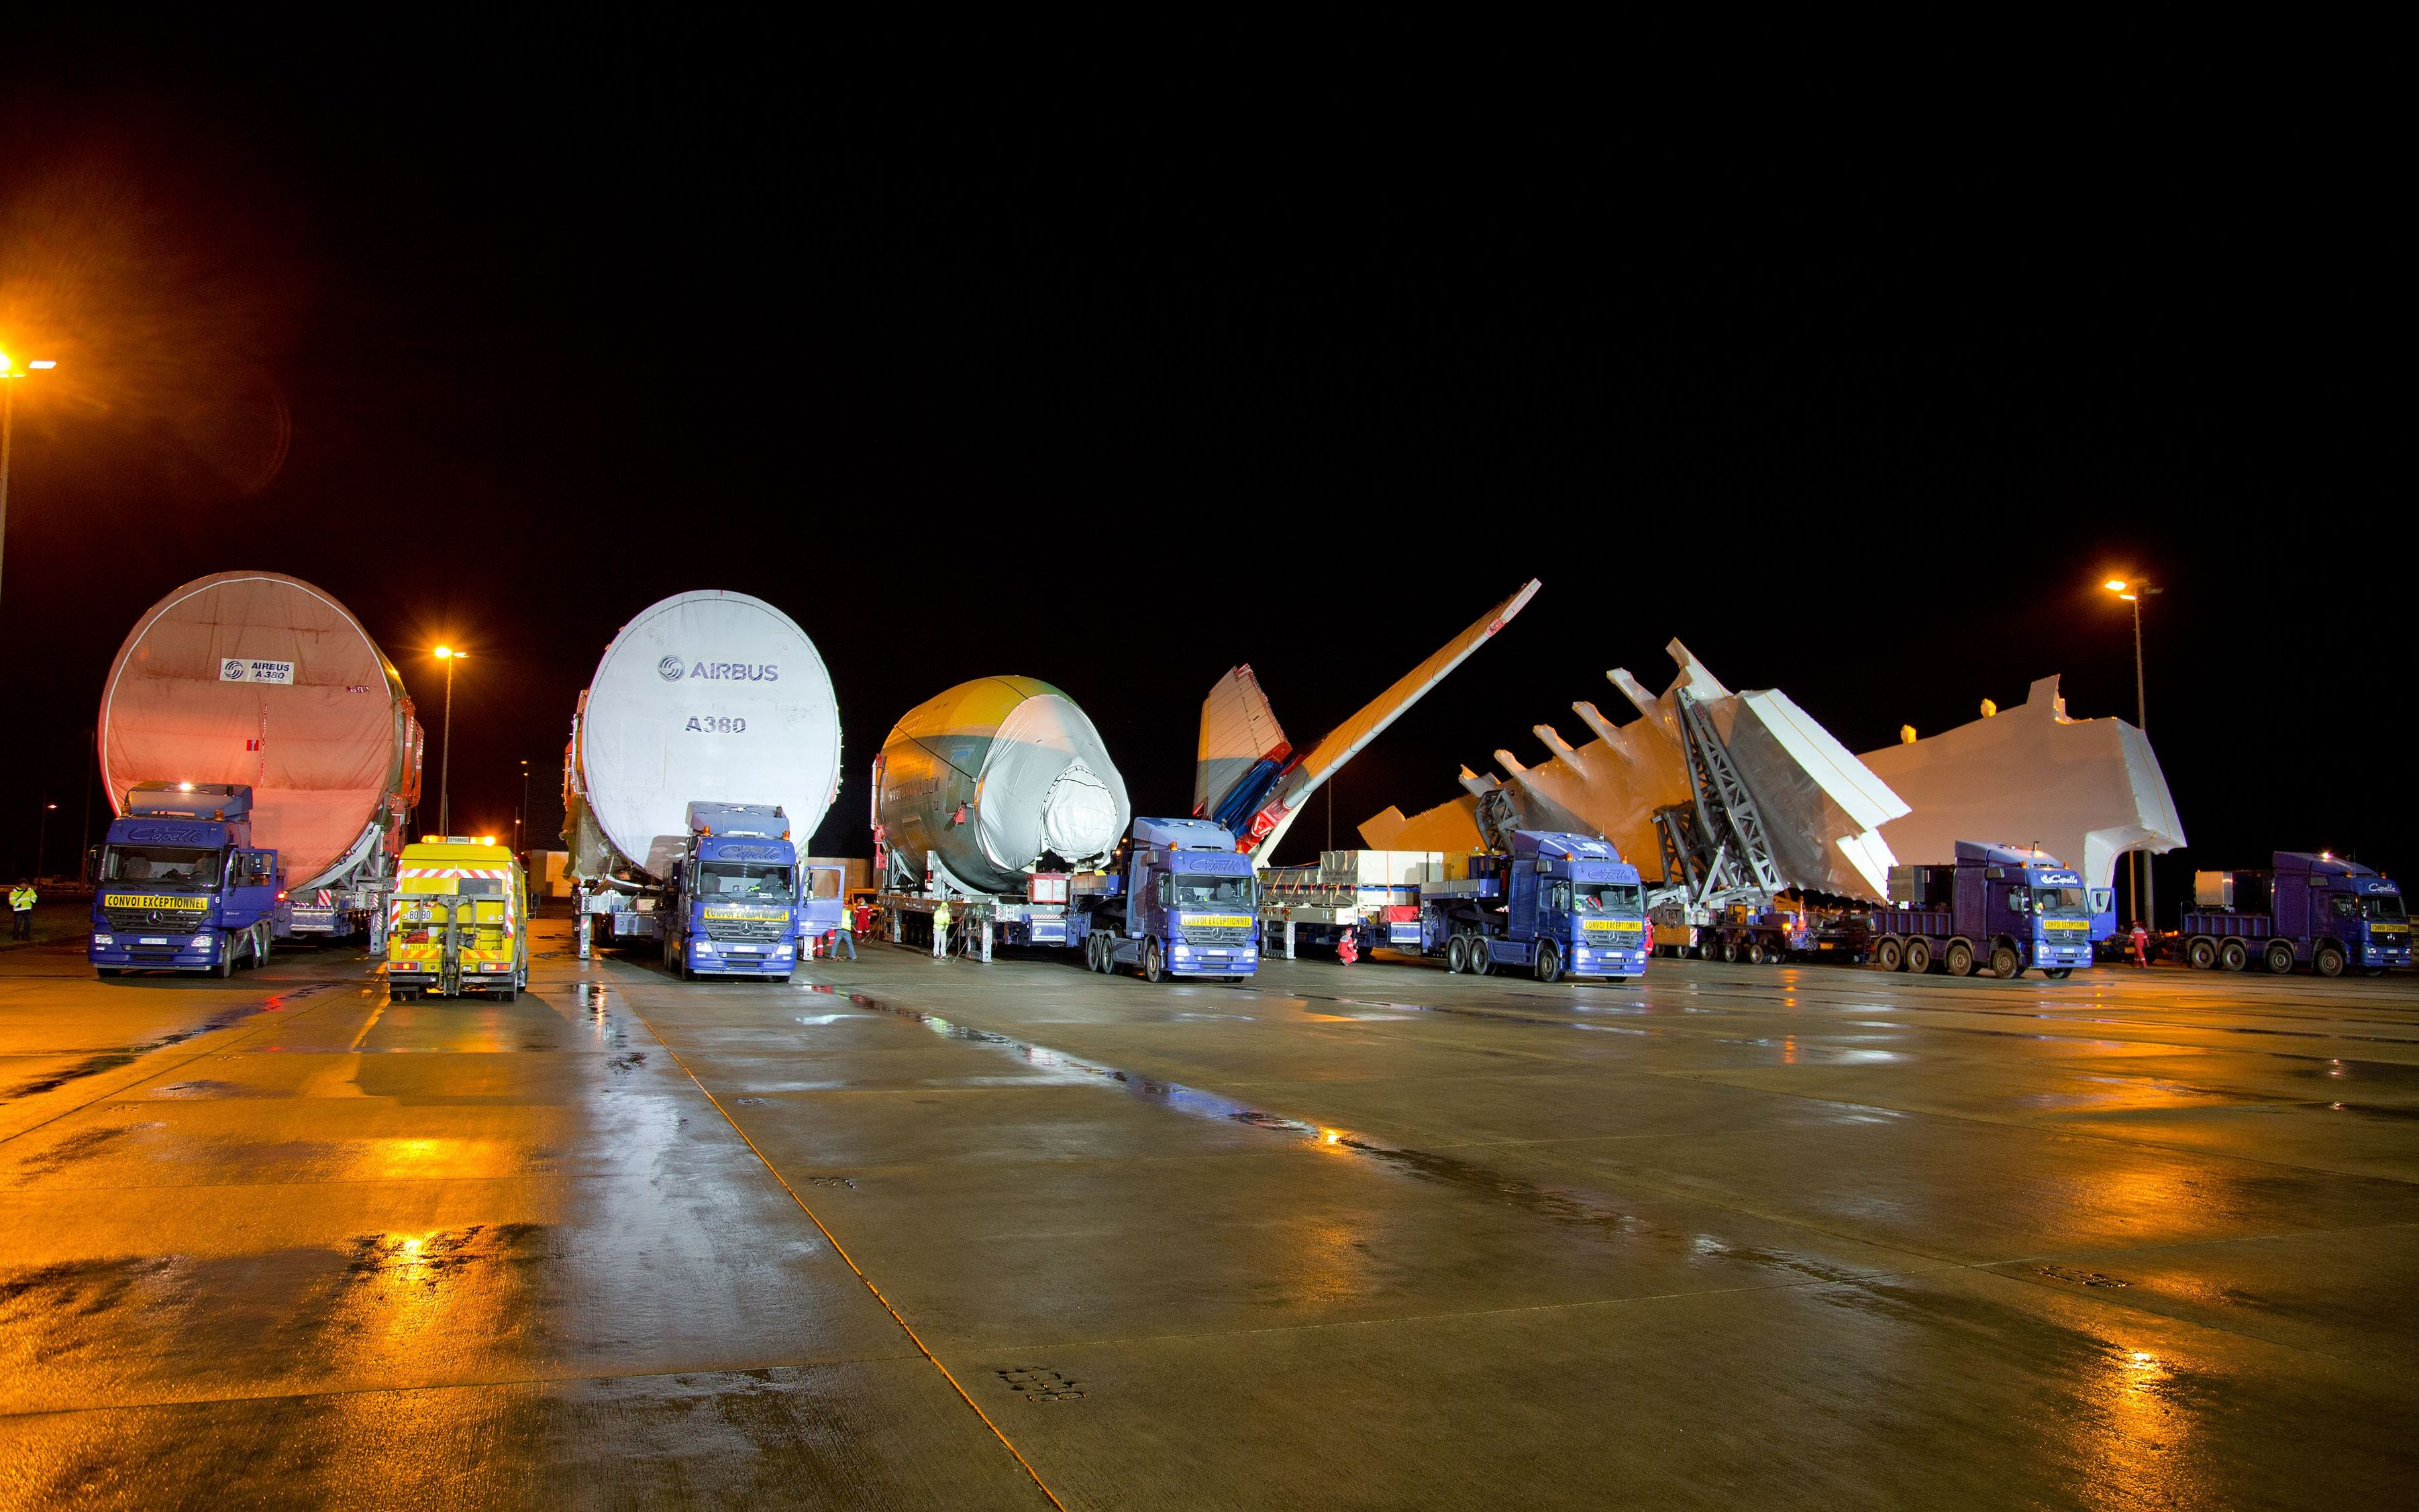 These huge airplane parts are on their way to becoming an A380, the world's largest passenger airliner. Photo: Airbus